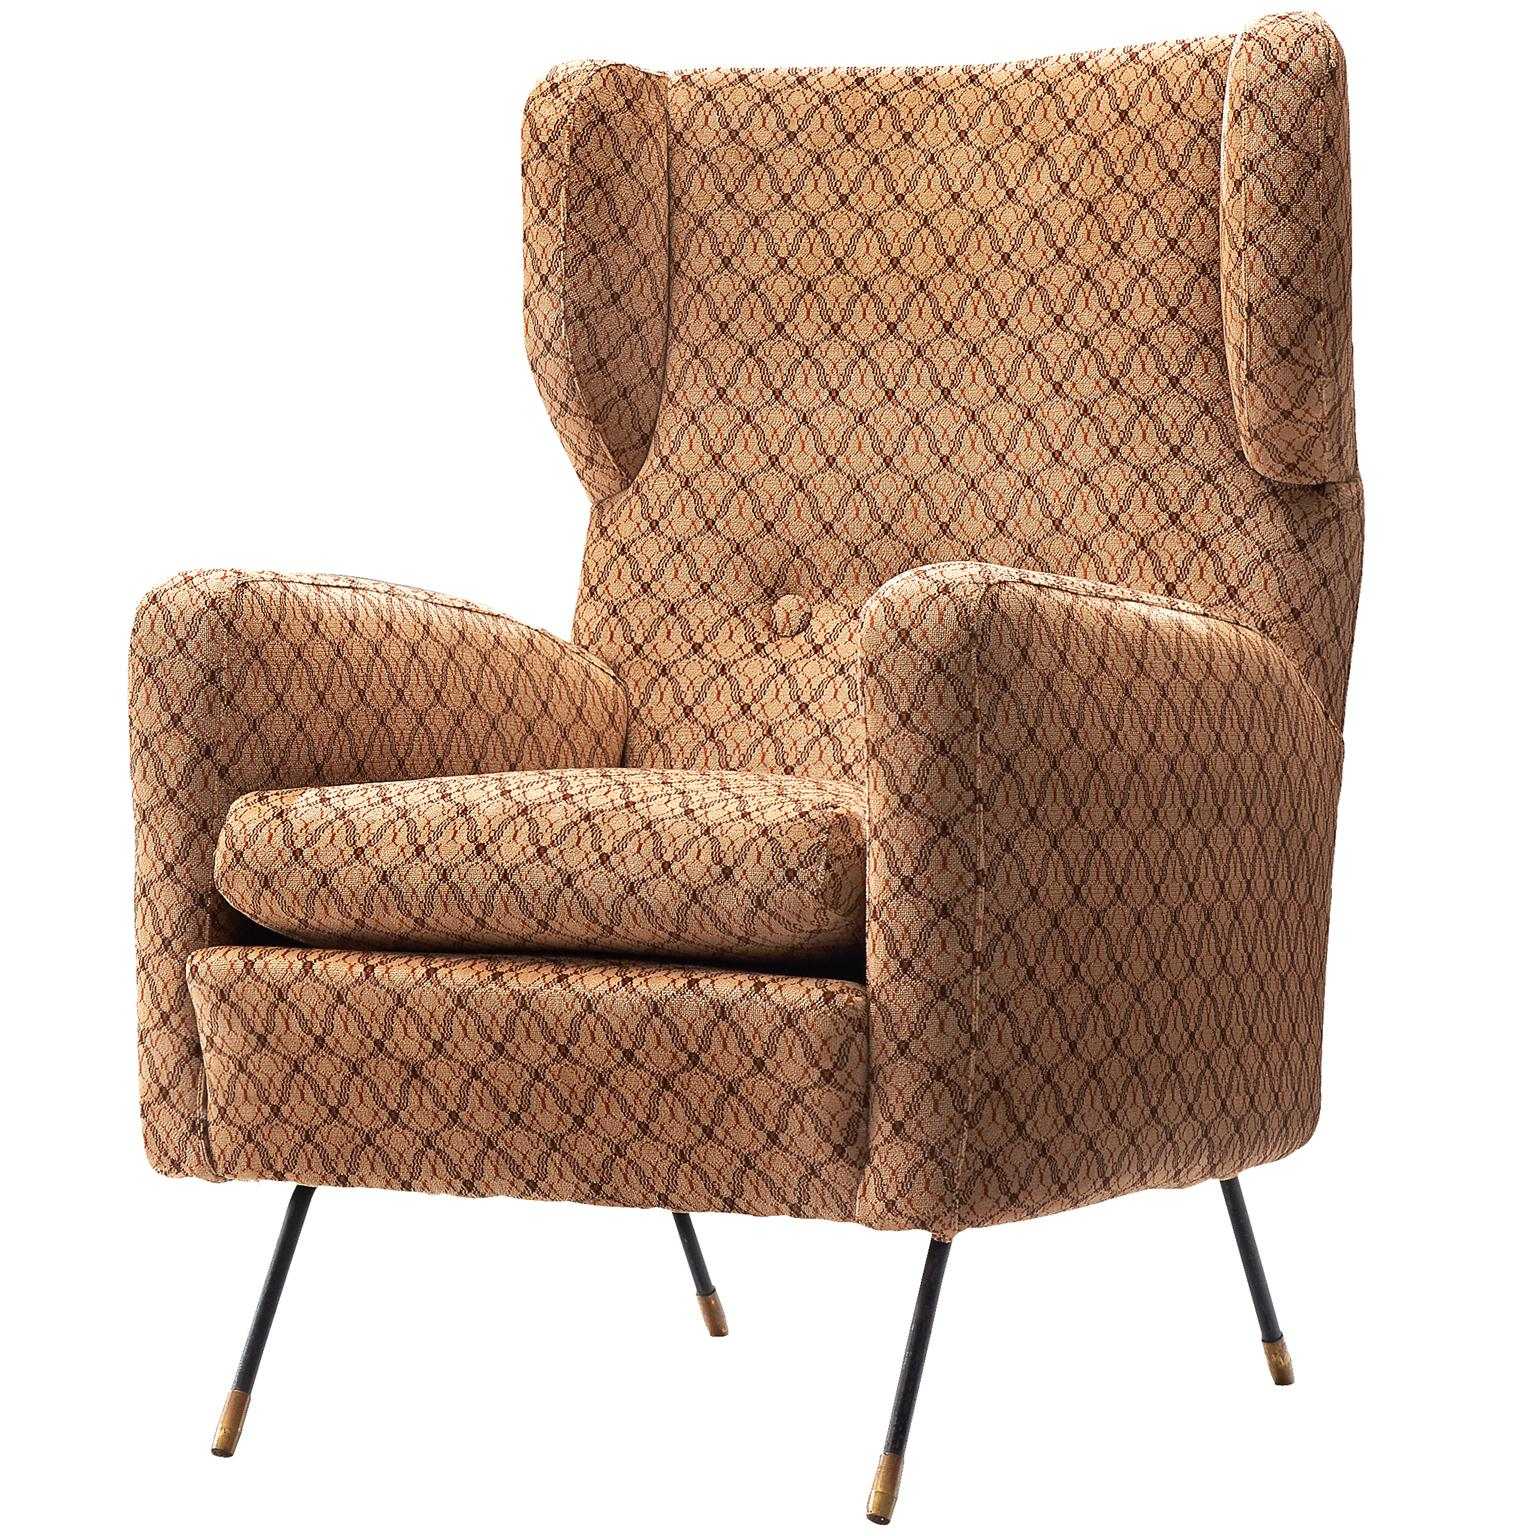 Italian Wingback Chair with Slender Legs